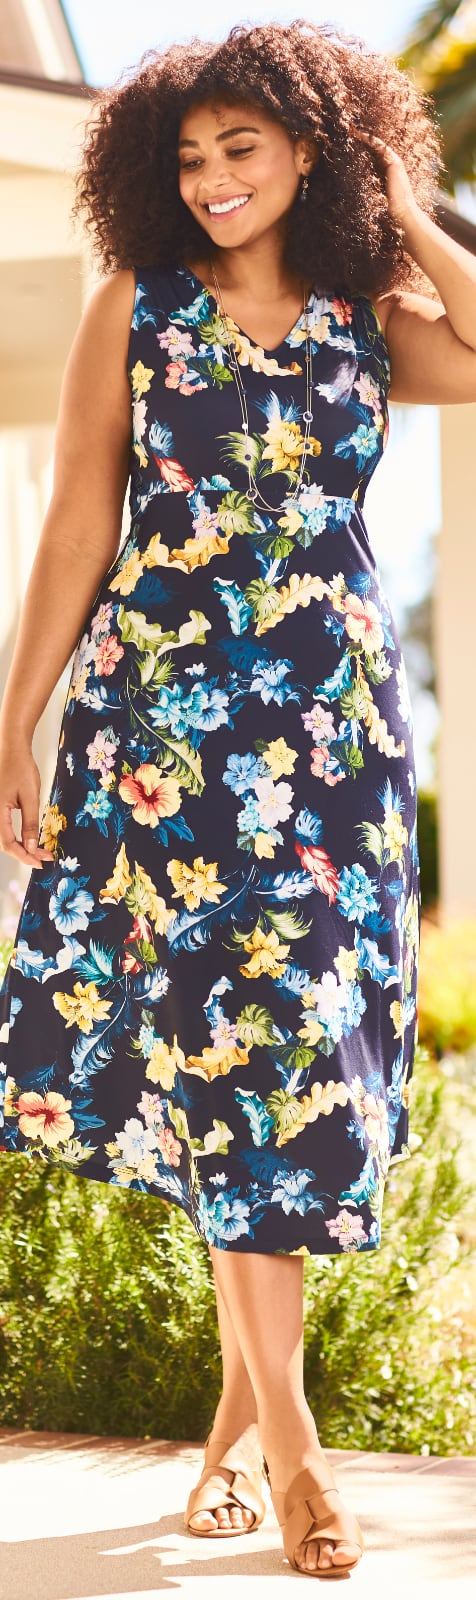 """The """"Bright Floral Summer"""" Outfit featuring a Sleeveless Floral Printed Dress and a Triple Strand Necklace."""